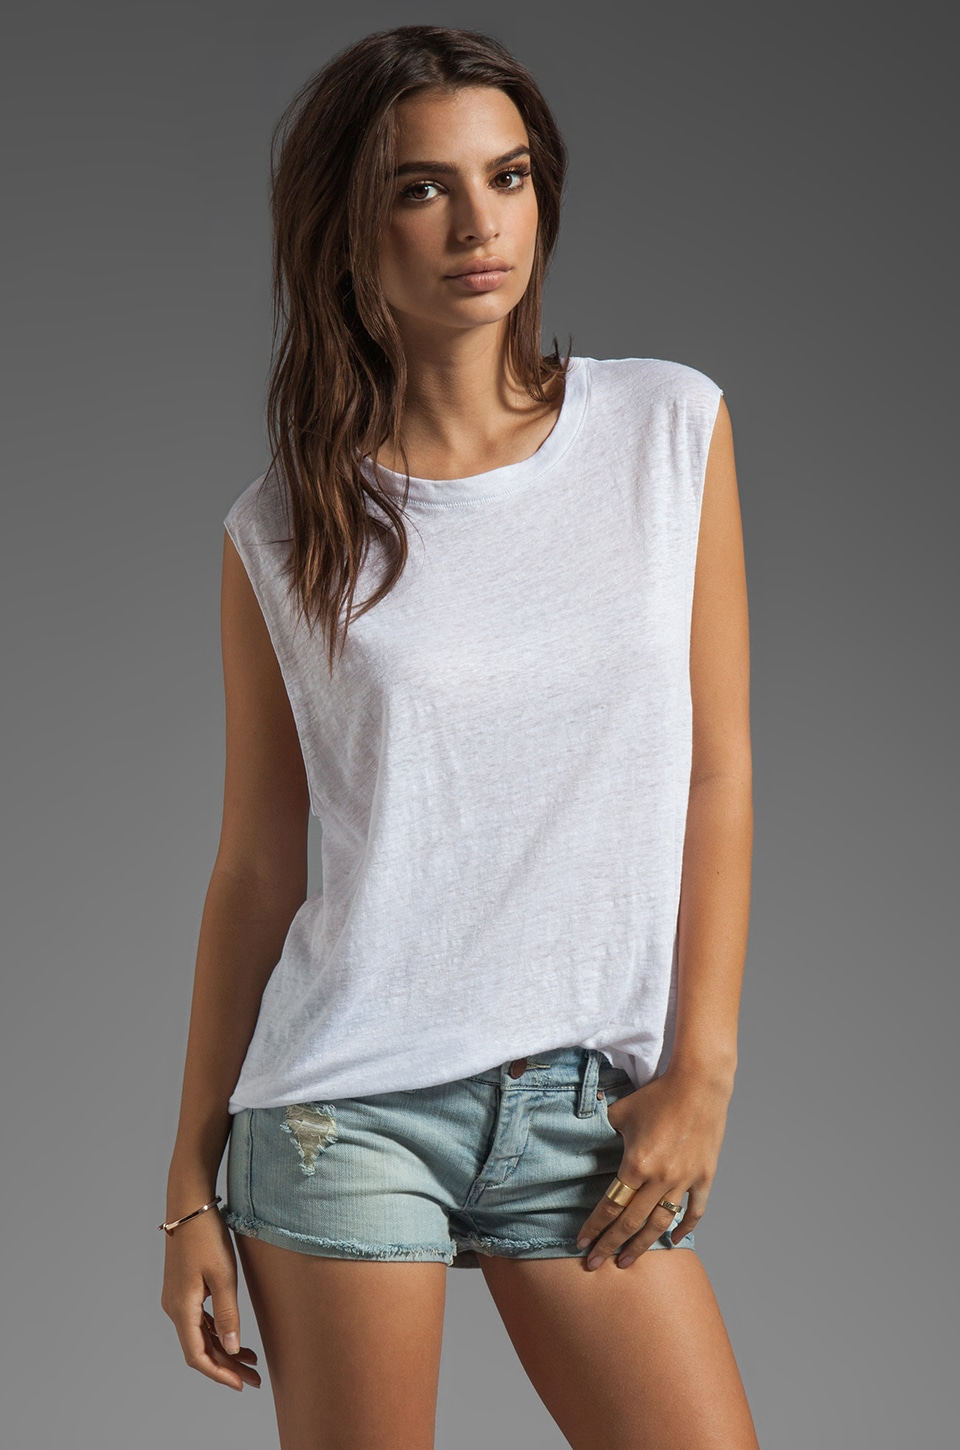 Michael Stars Linen Knit Tees Crew Neck Dropped Armhole Tank in White